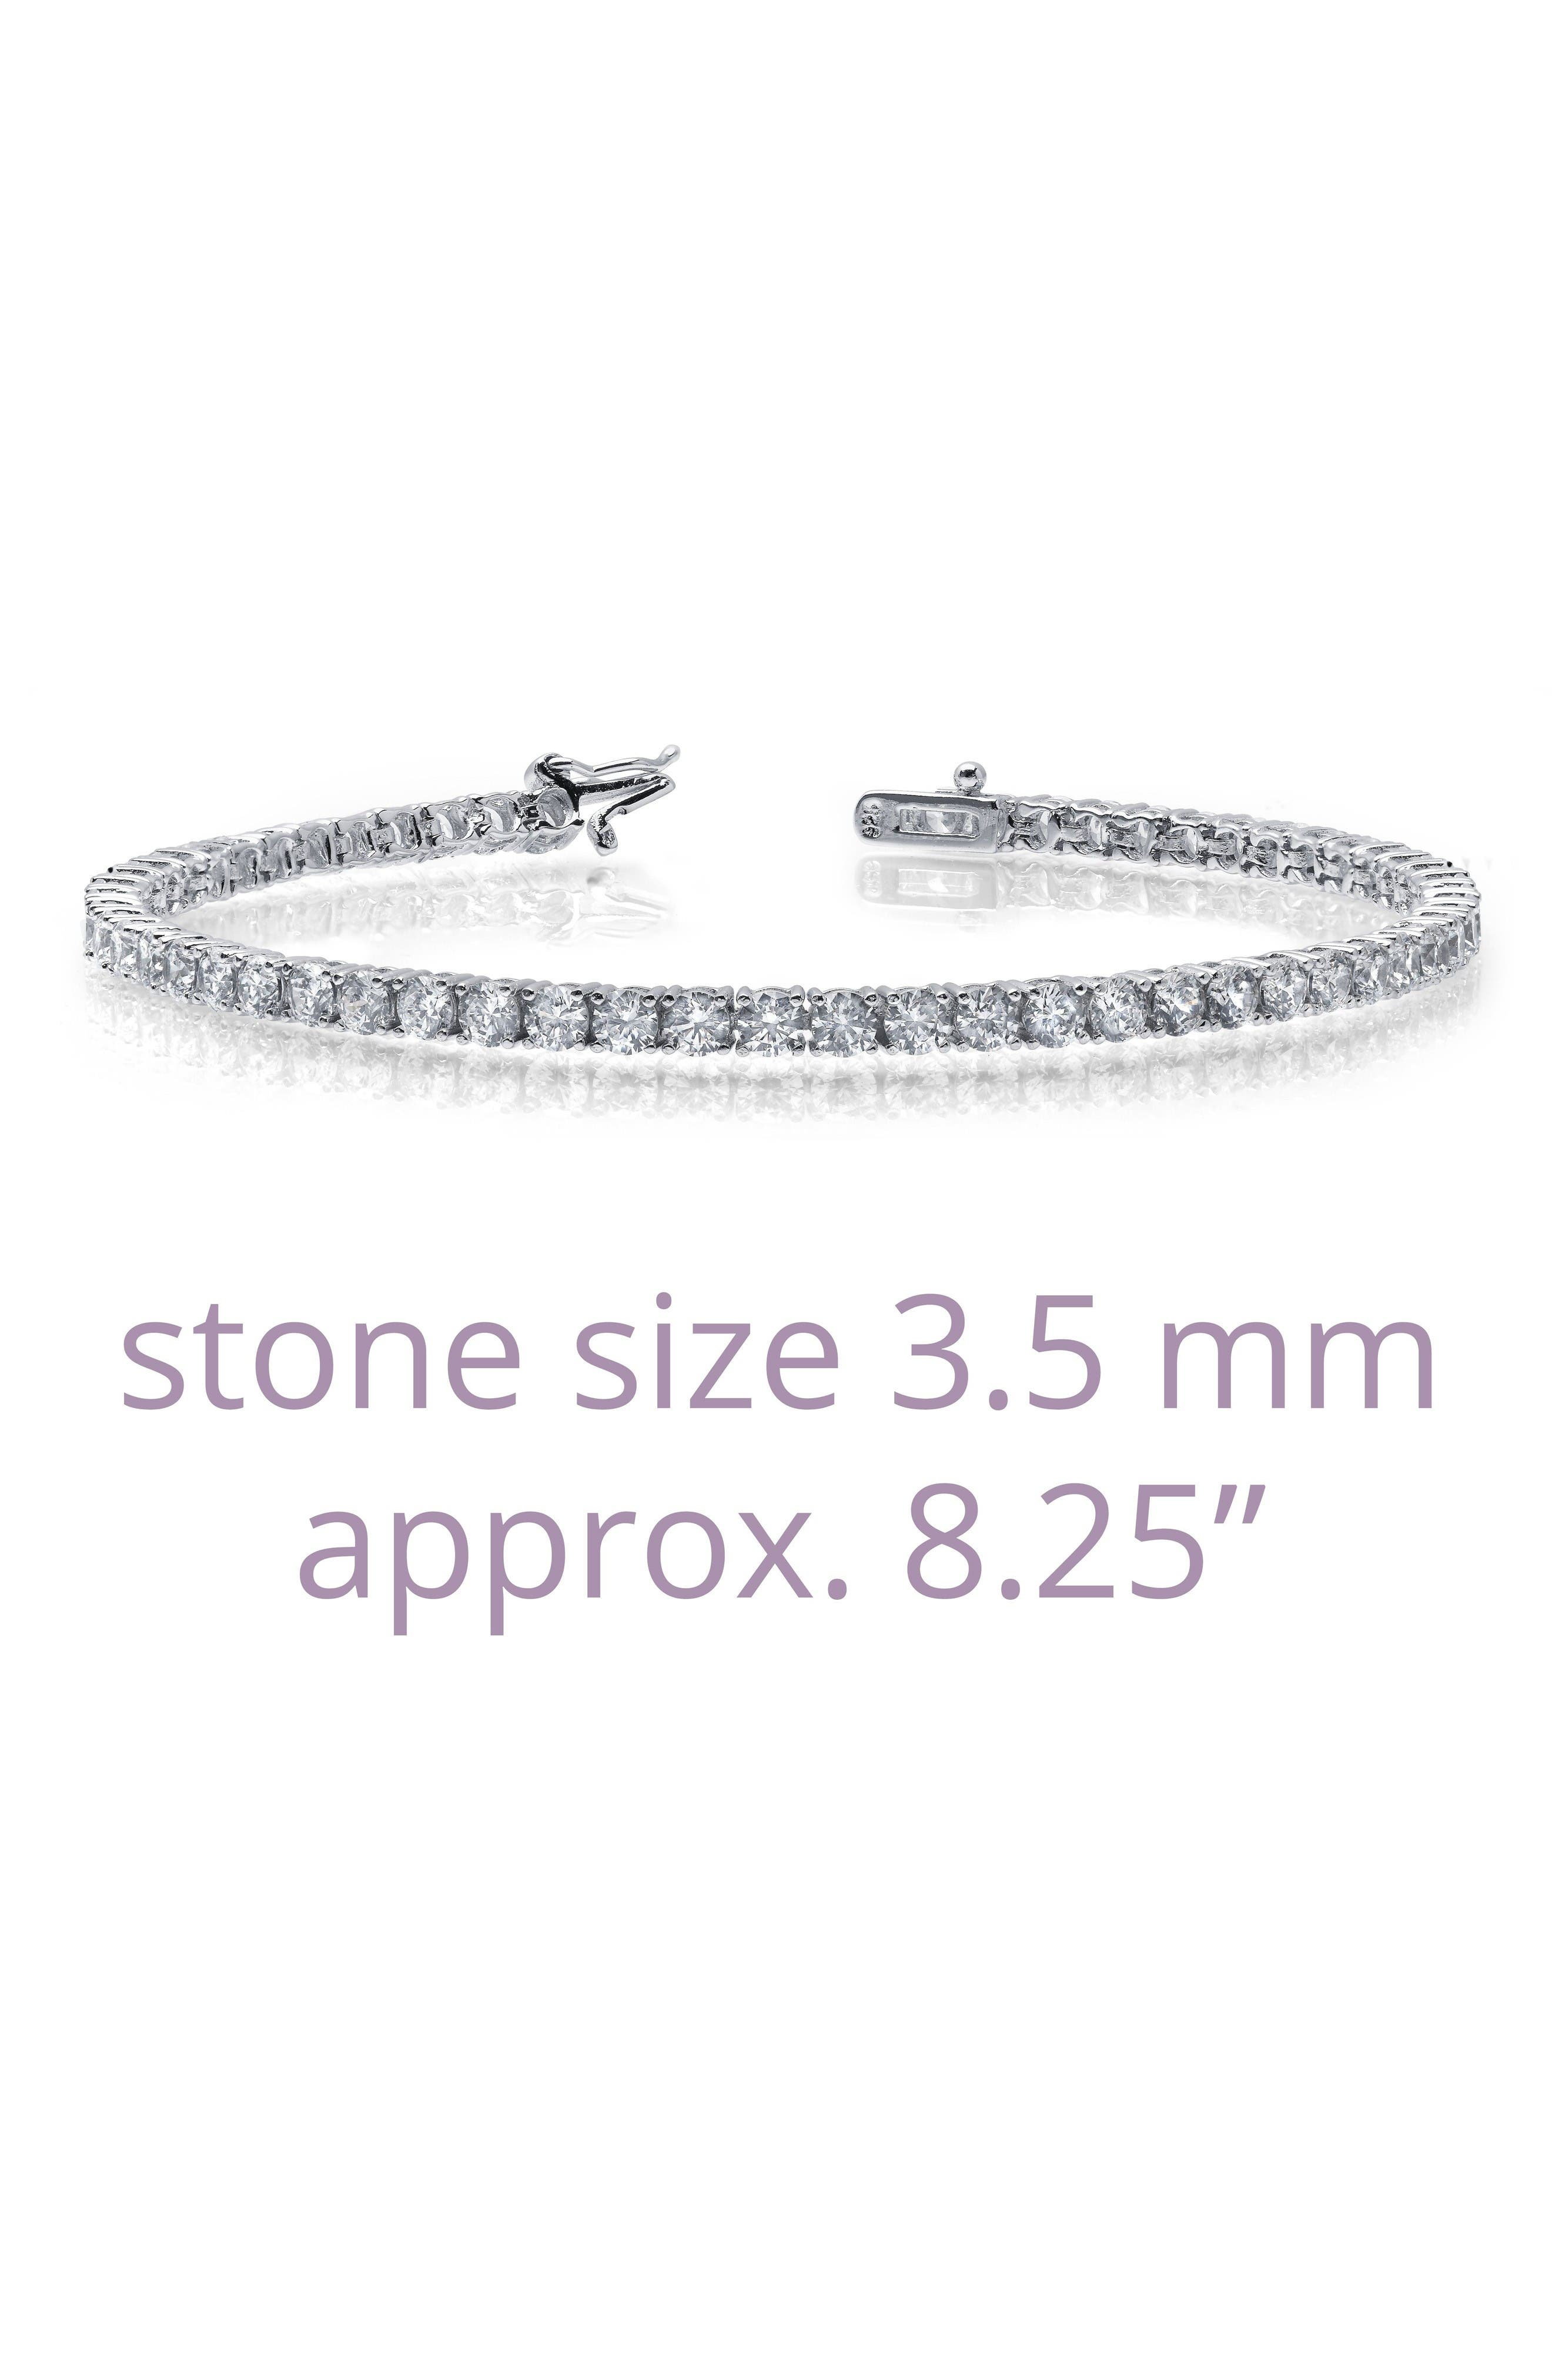 Classic Simulated Diamond Tennis Bracelet,                             Alternate thumbnail 2, color,                             Silver